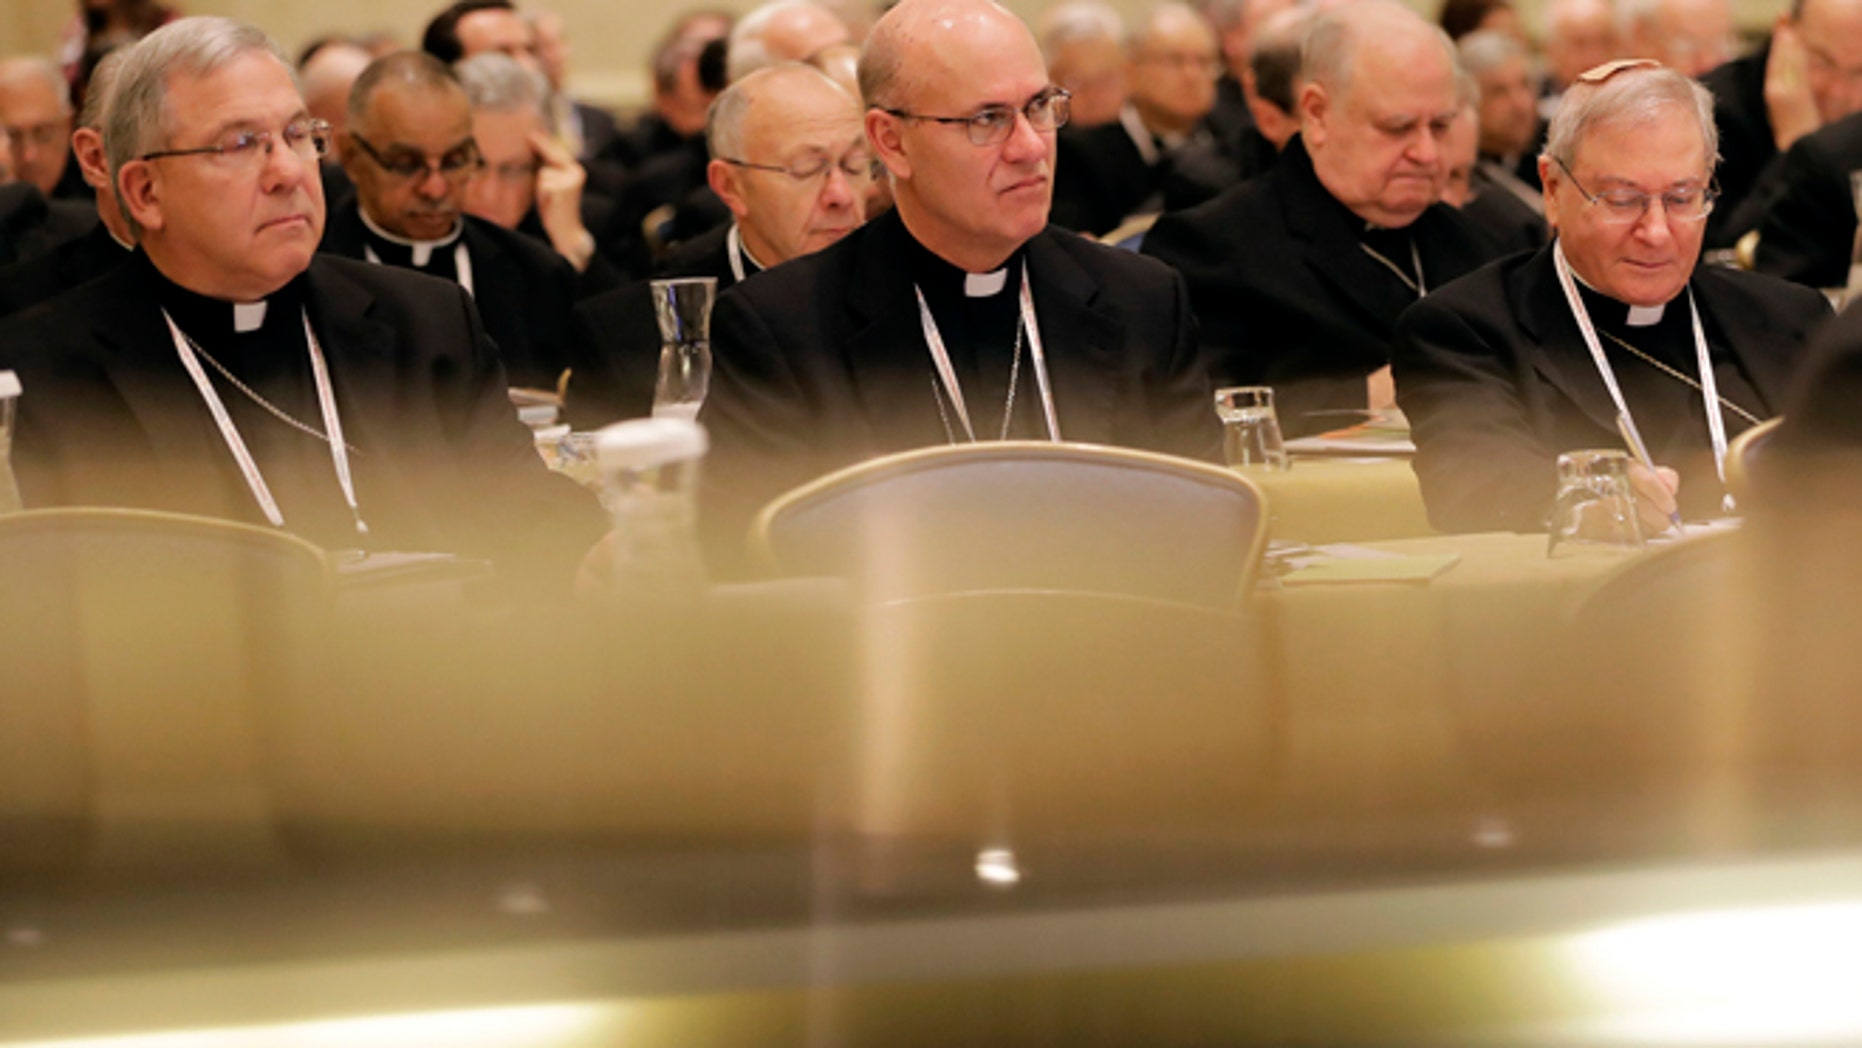 Members of the United States Conference of Catholic Bishops are seen above reflections on a piano as they attend the USCCB's annual fall meeting in Baltimore, Monday, Nov. 14, 2016. The bishops opened their meeting by urging President-elect Donald Trump to adopt humane policies toward immigrants and refugees. (AP Photo/Patrick Semansky)